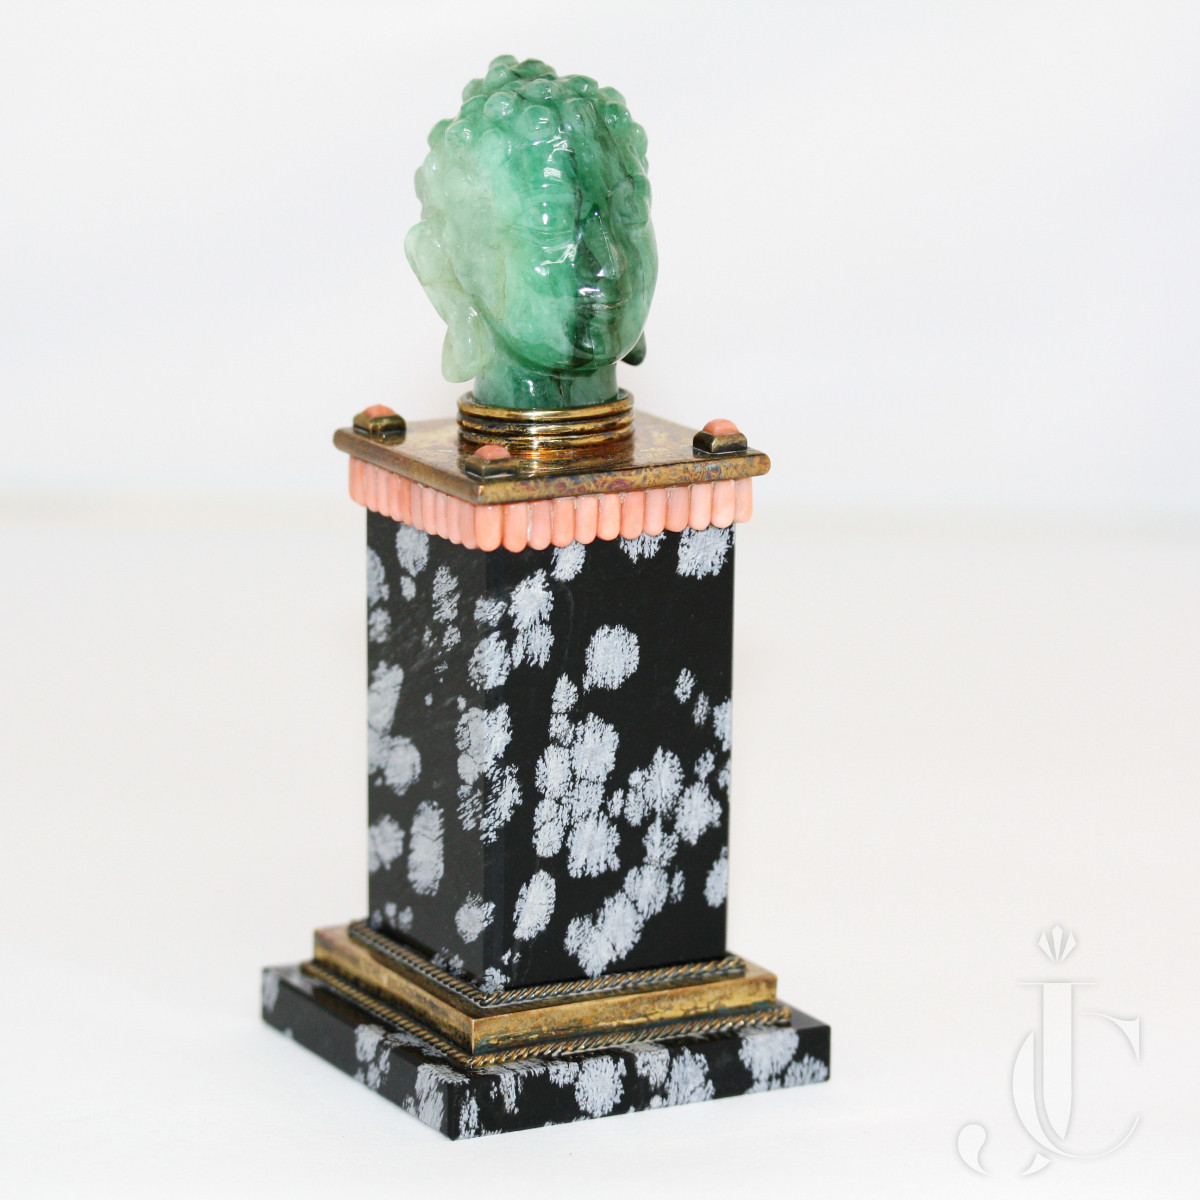 French gold emerald Buddha head and obsidian, coral column stand sculpture